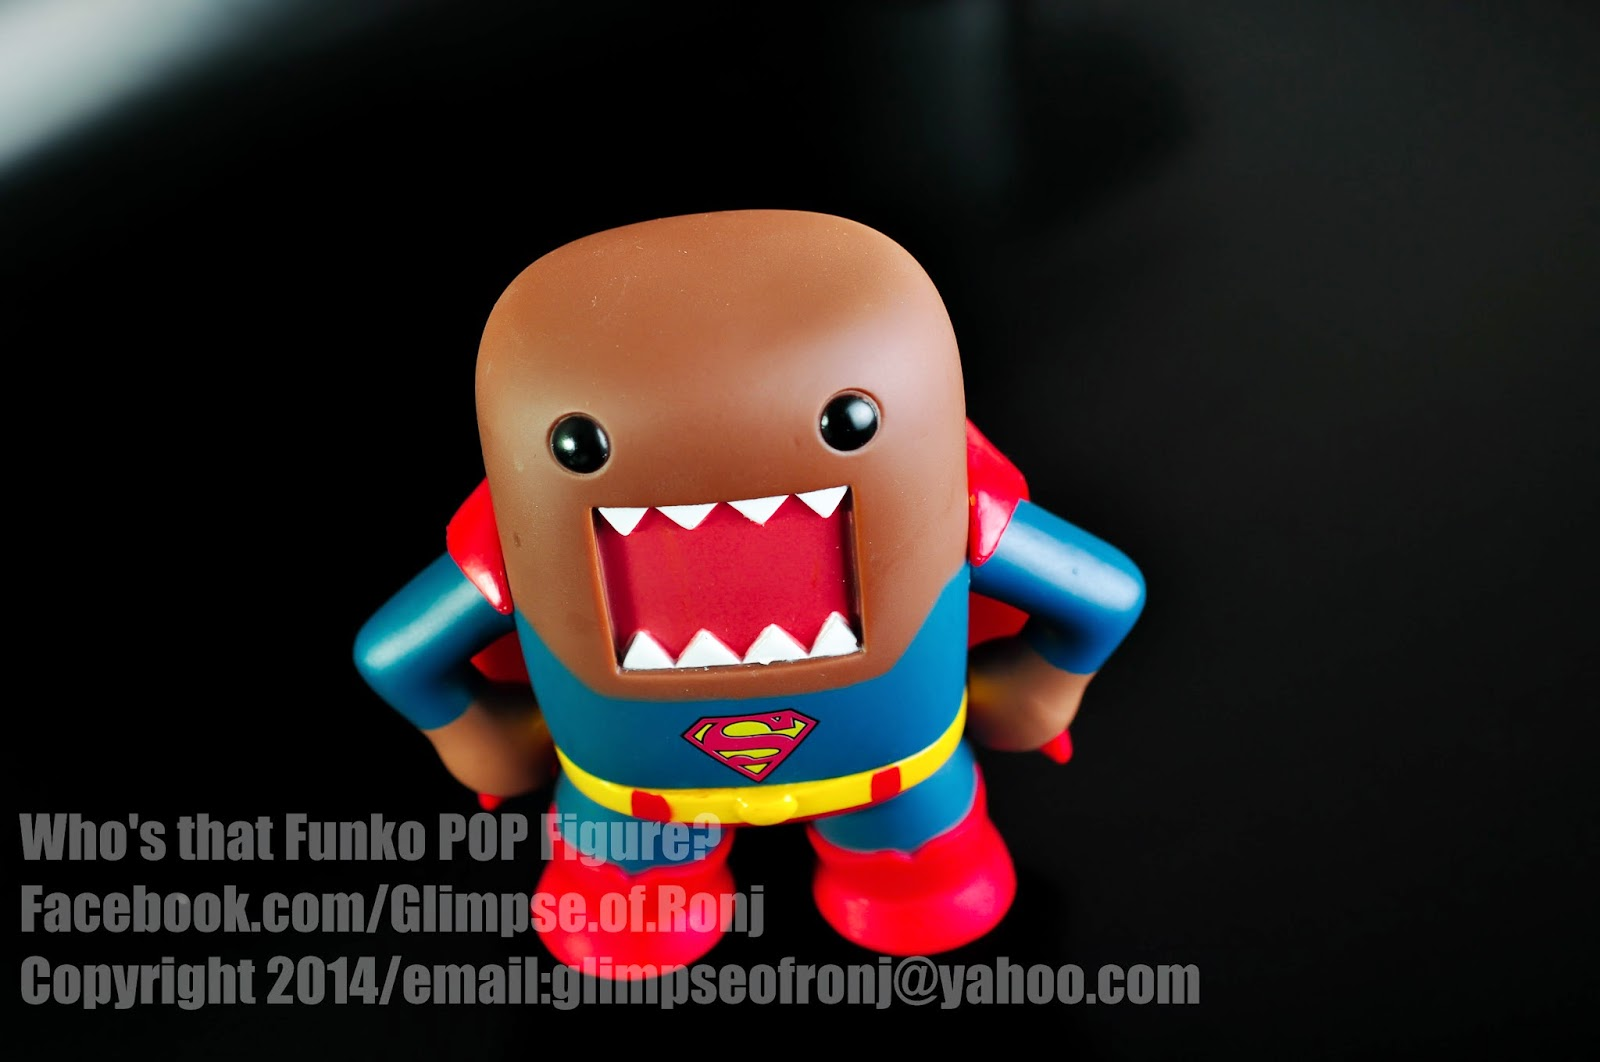 DOMO-KUN Superman FUNKO POP VINYL